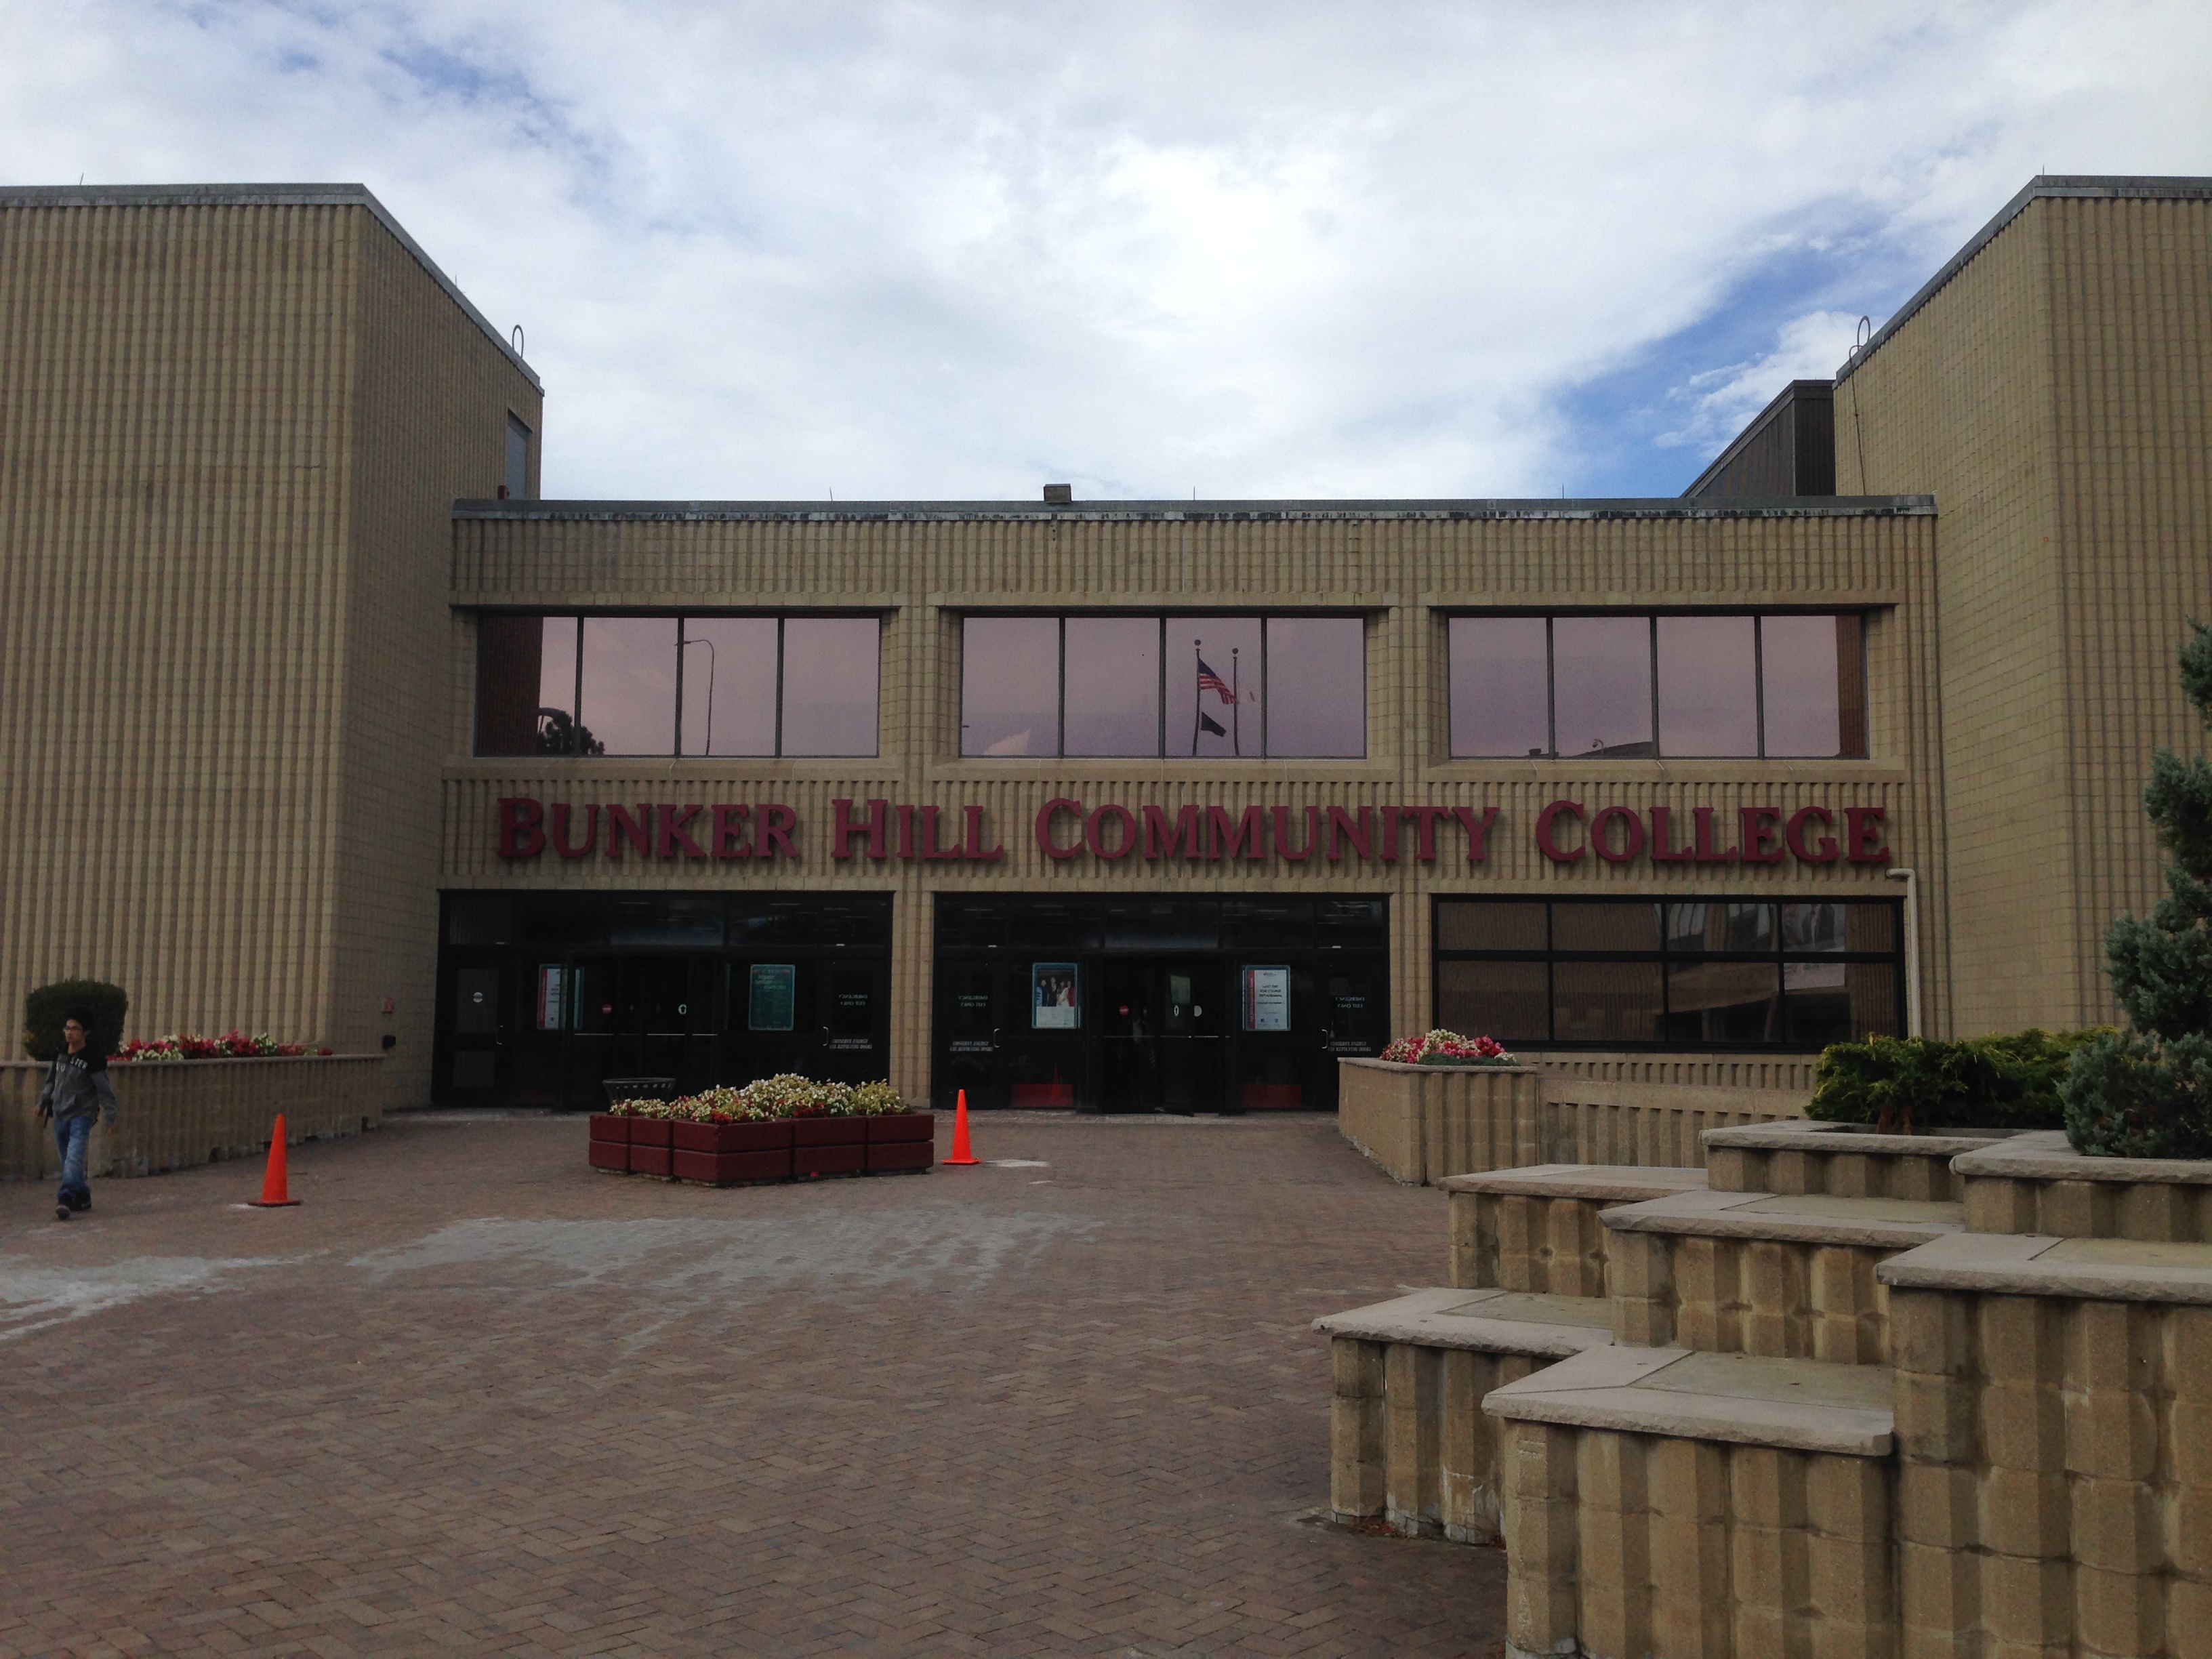 On Campus Entries Tagged Bunker Hill Community College